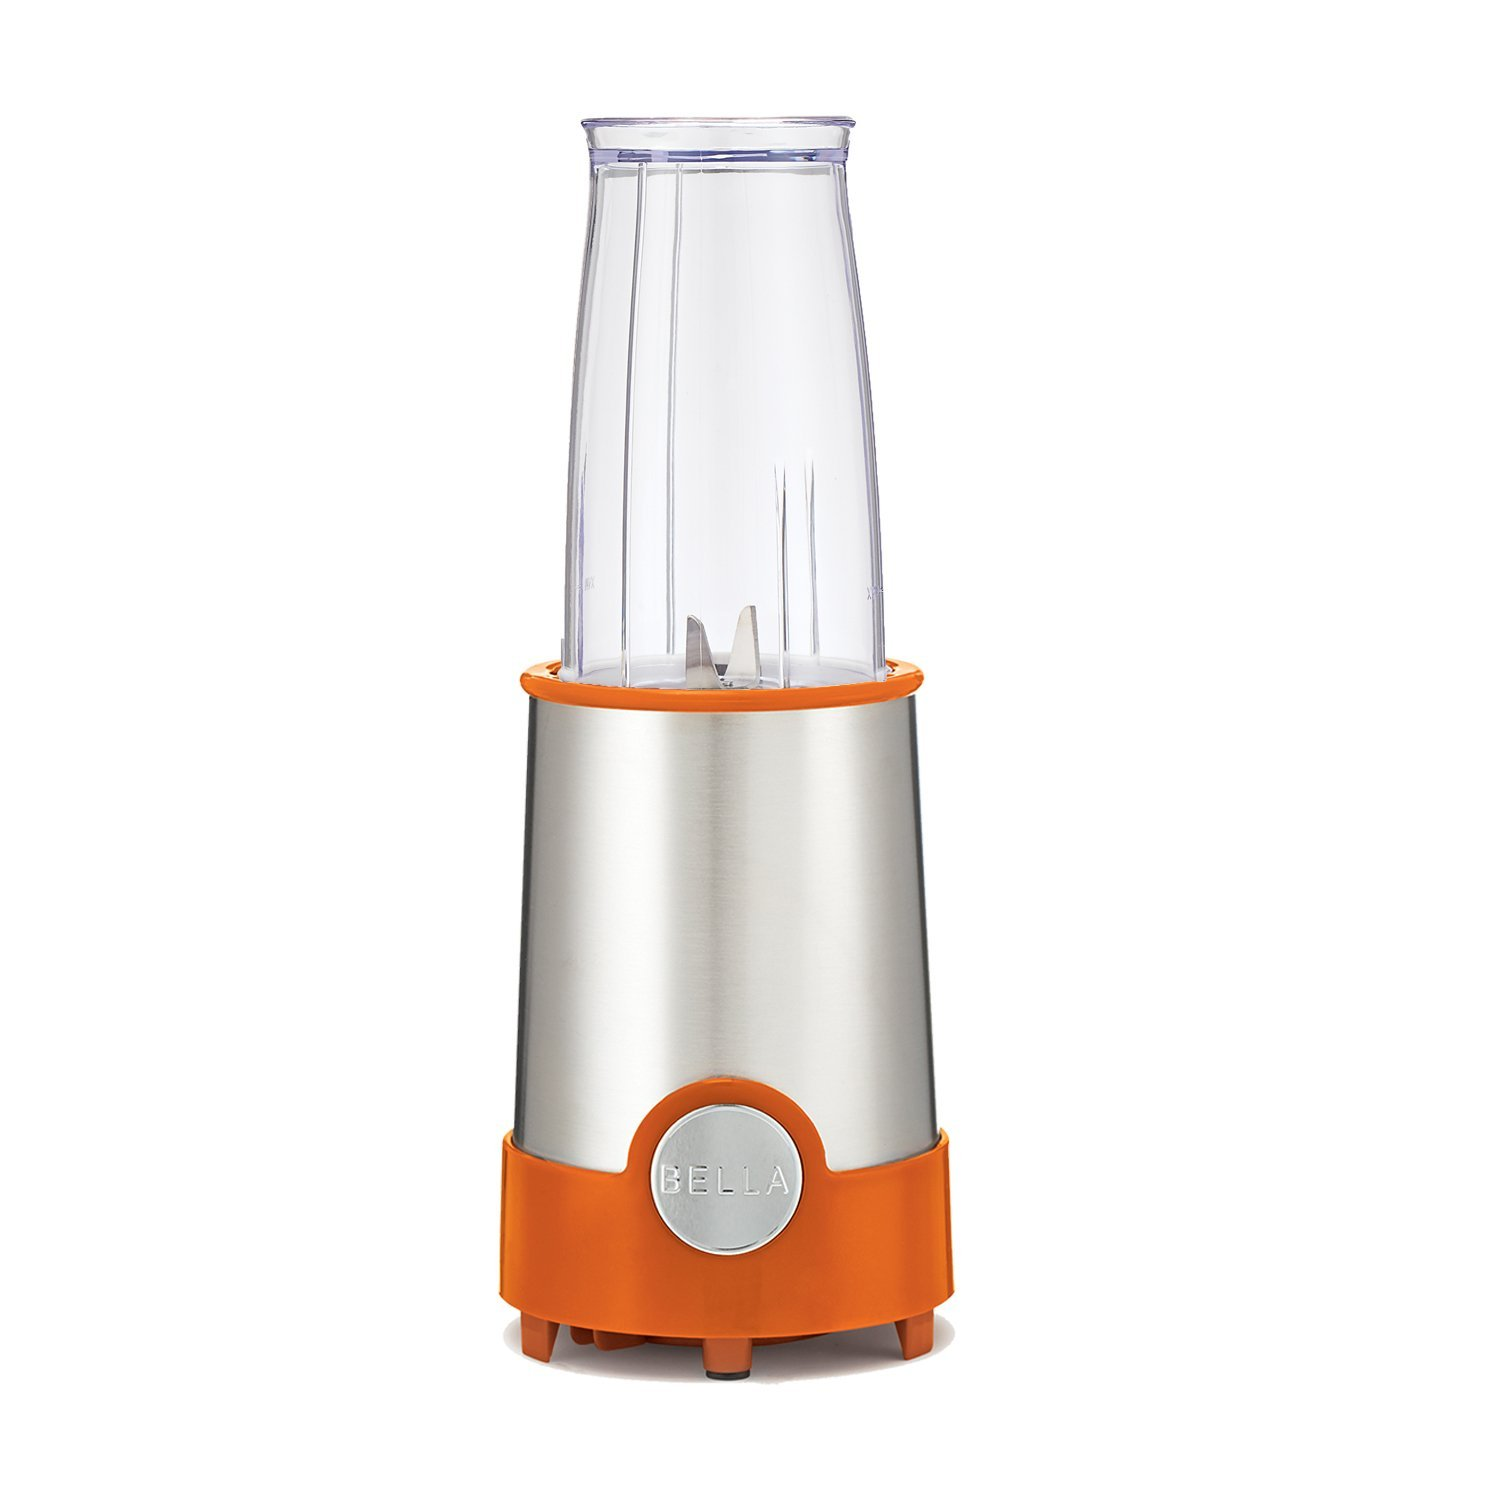 BELLA Personal Size Blender, 12 piece set, color orange and stainless steel